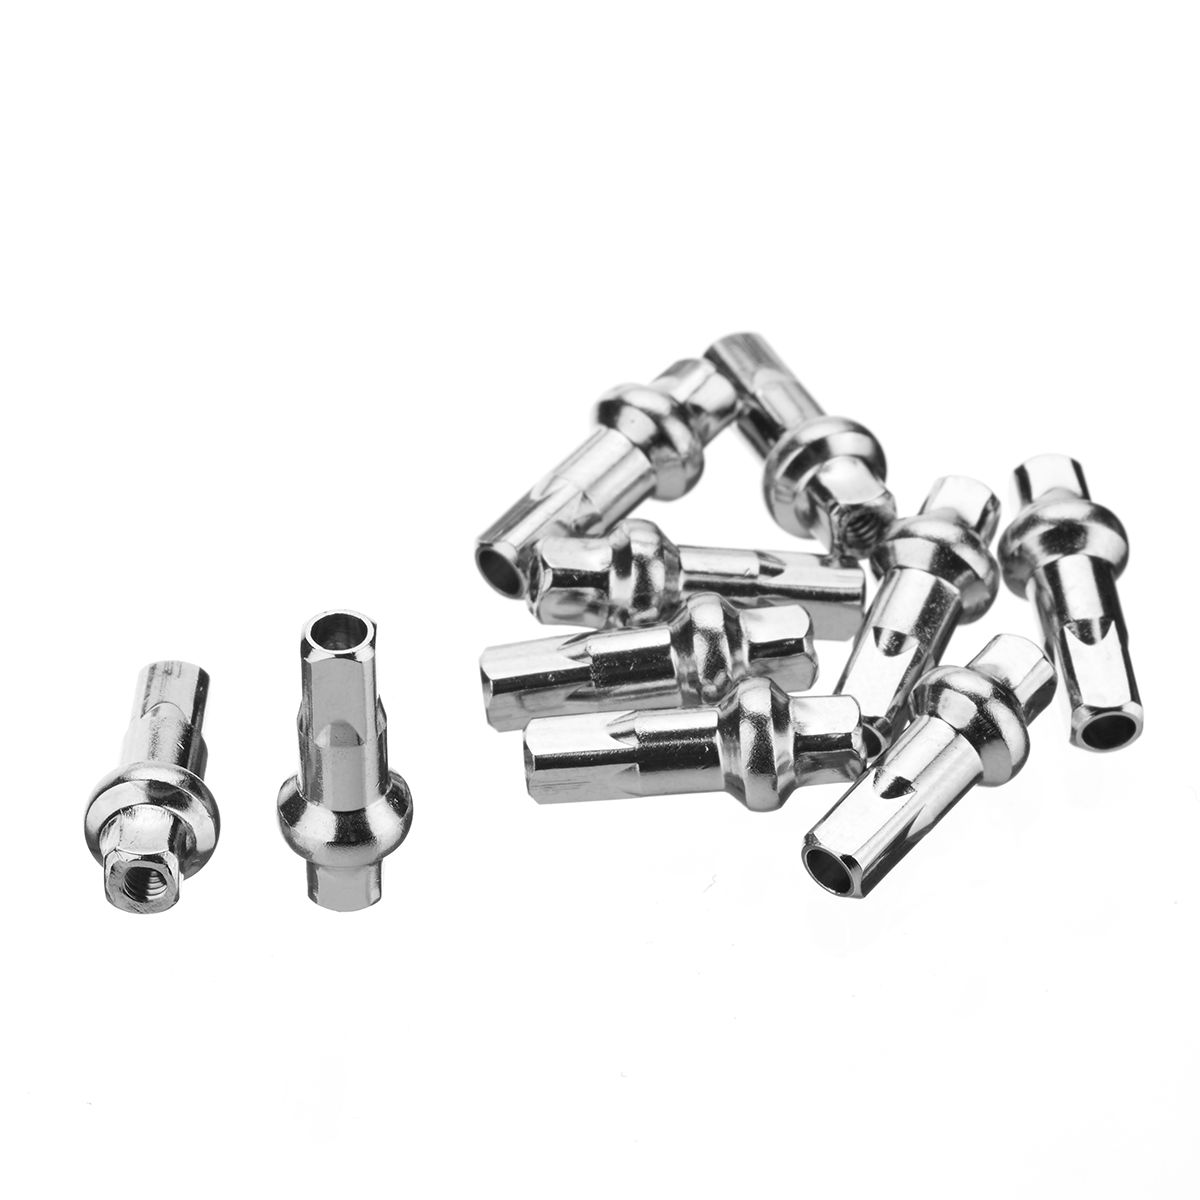 Double Square Brass Spoke Nipples Silver 10 Pack